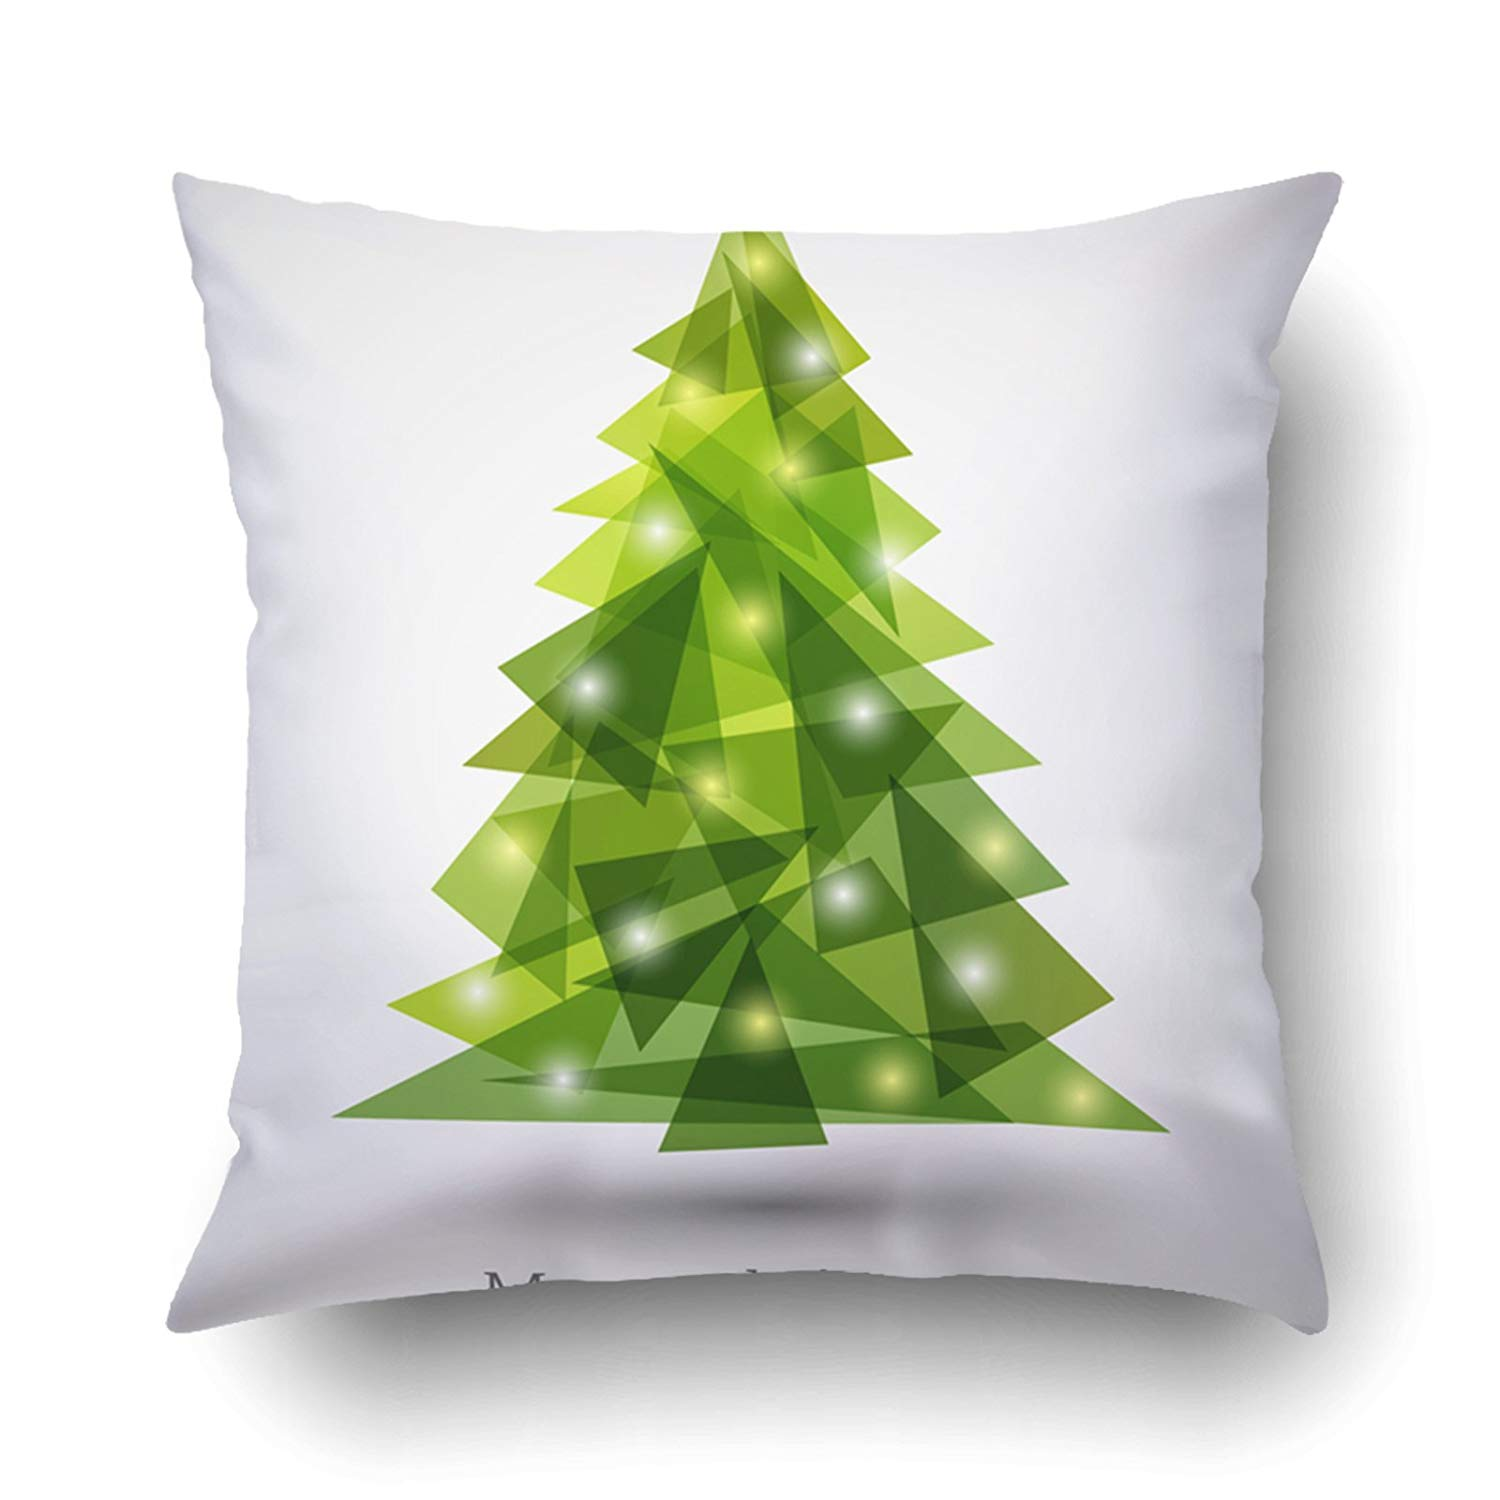 WOPOP Xmas Abstract Christmas Tree Made Of Green Triangles Christmas Tree Greeting Pillow Case Cushion Cover Case Throw Pillow Case 20x20 inches